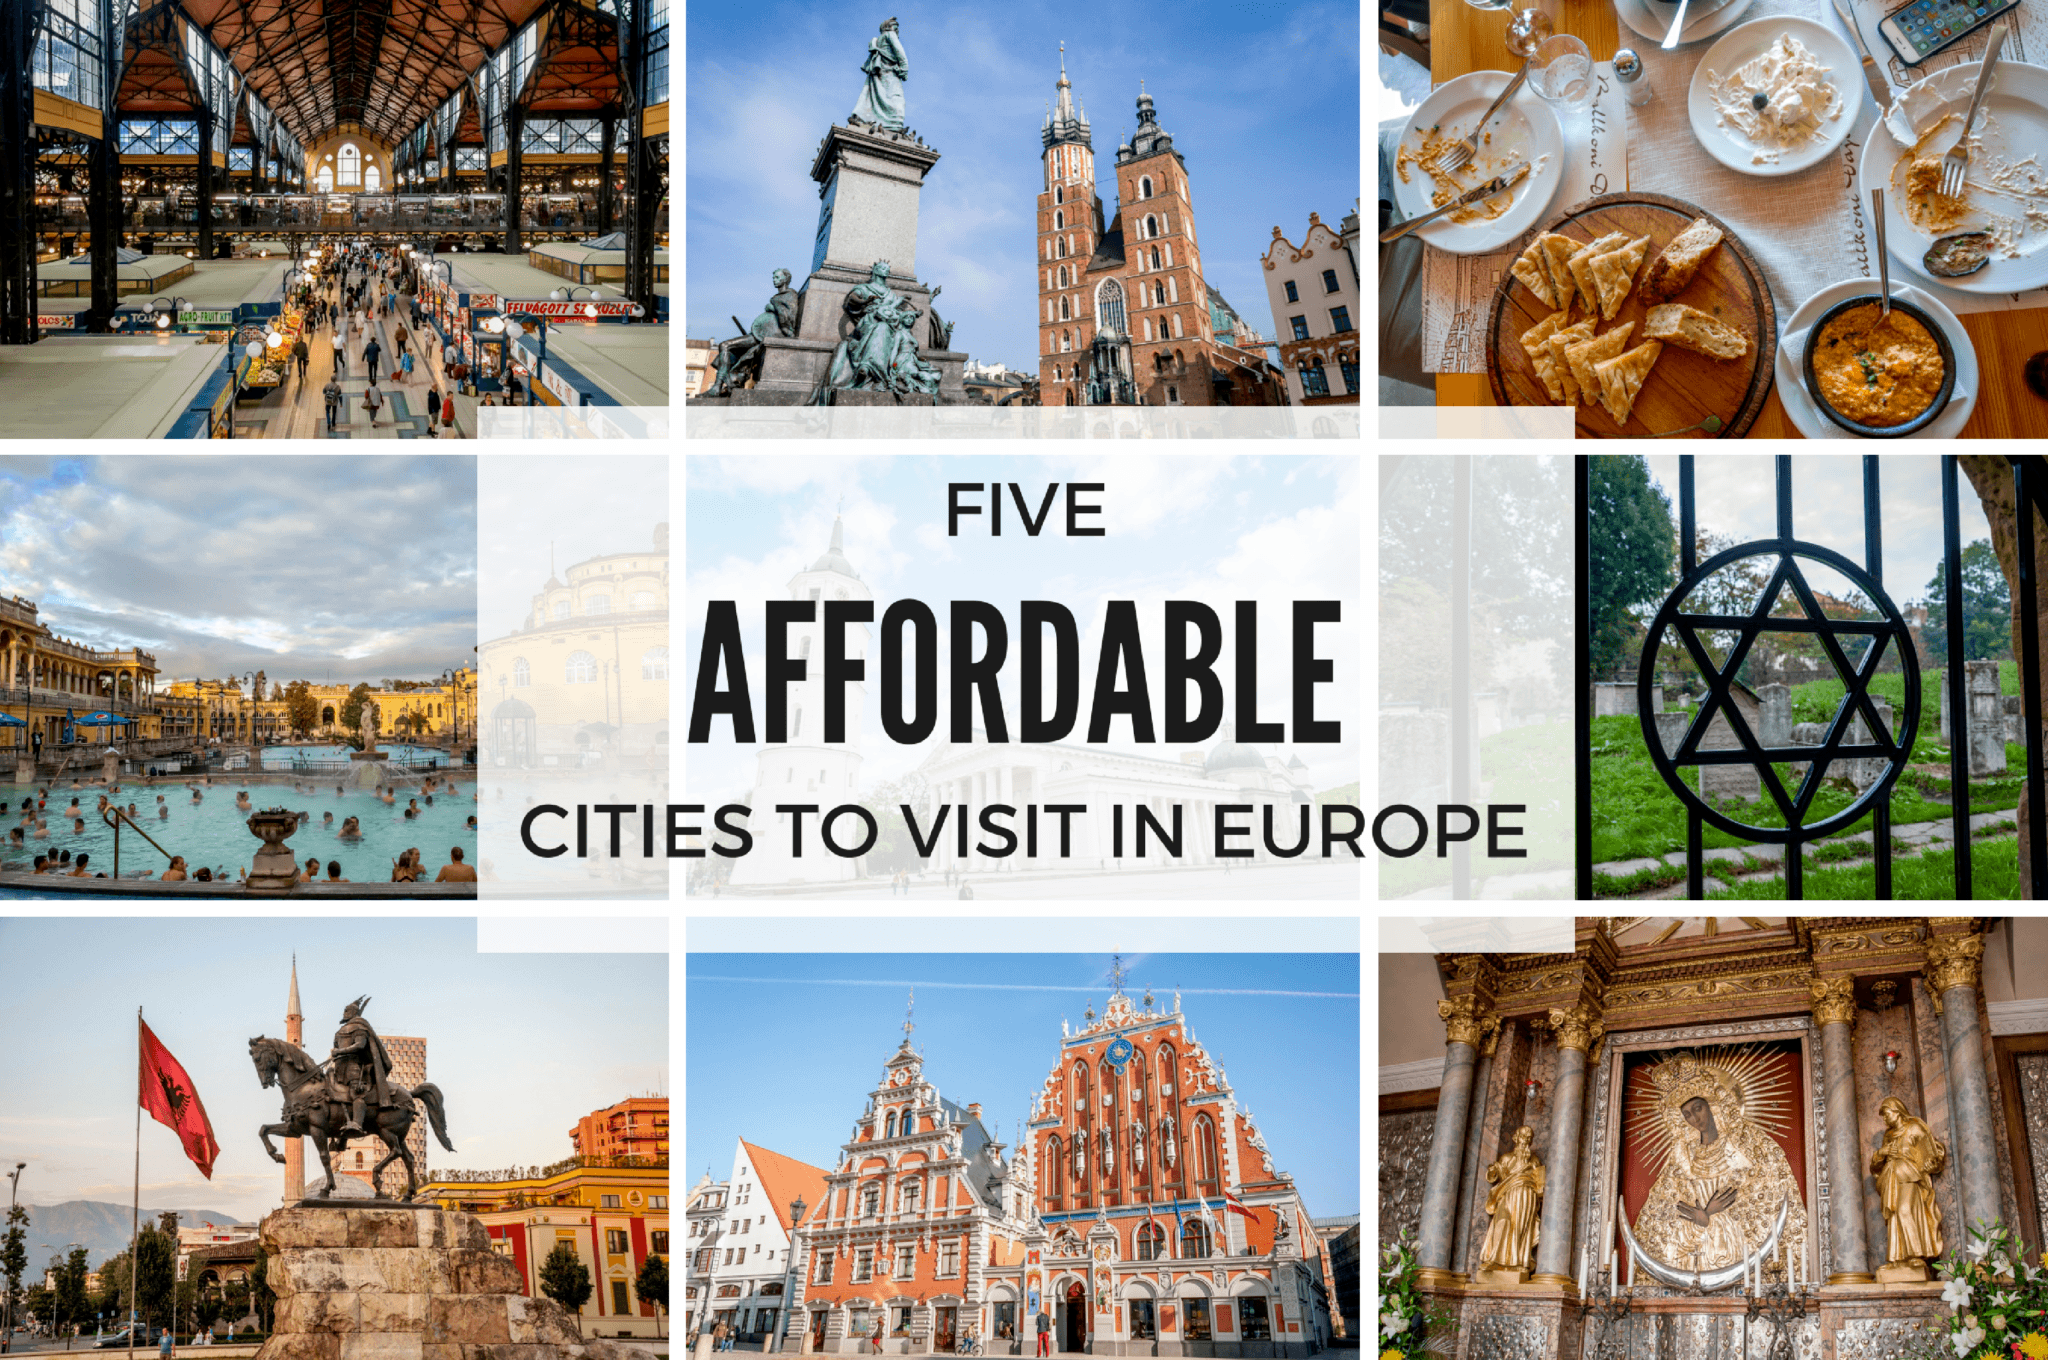 Five affordable cities to visit in Europe